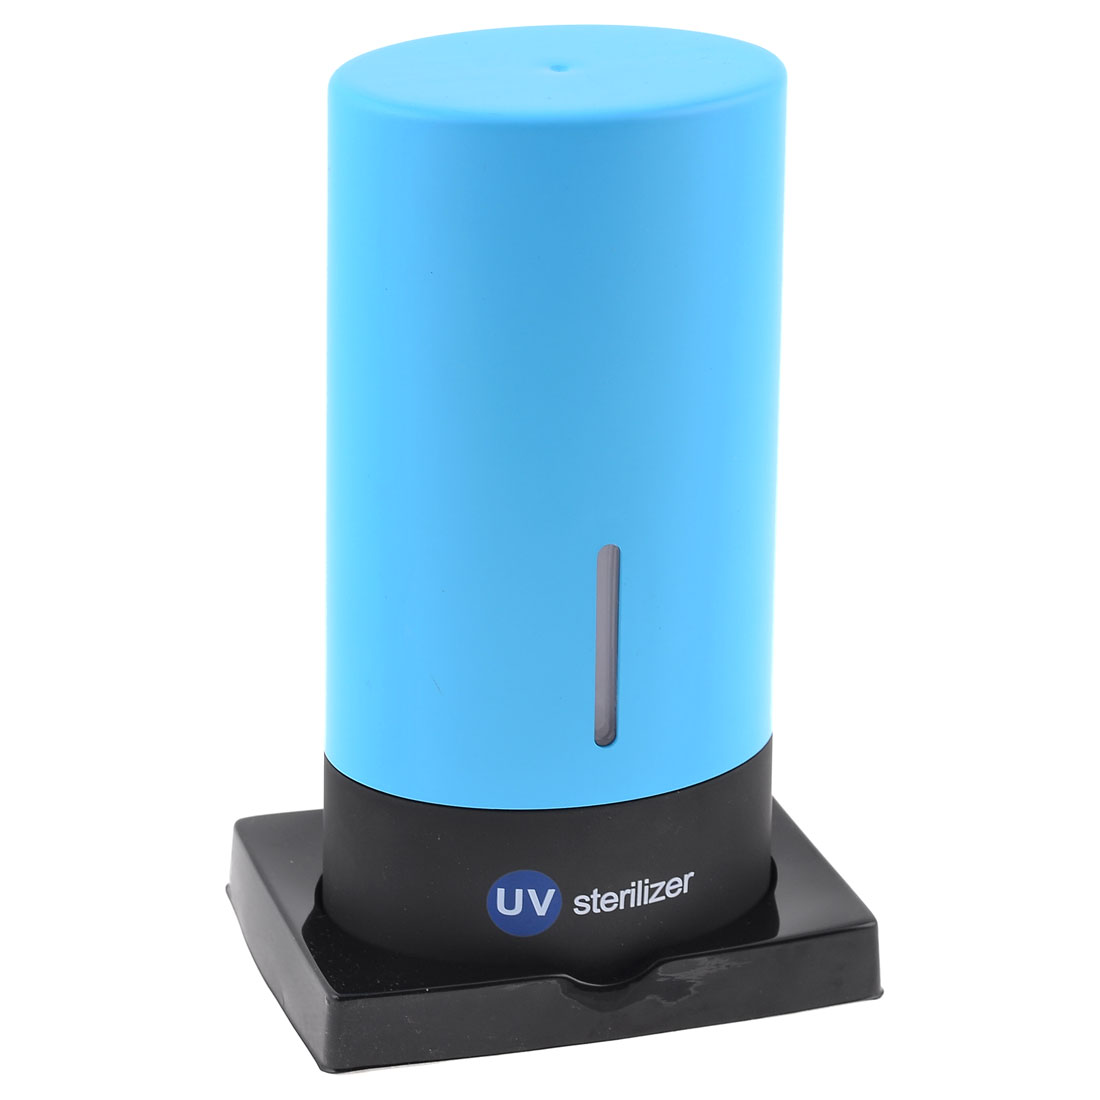 Blue Lid Black Base Mobile Phone Disinfector UV Sterilizer